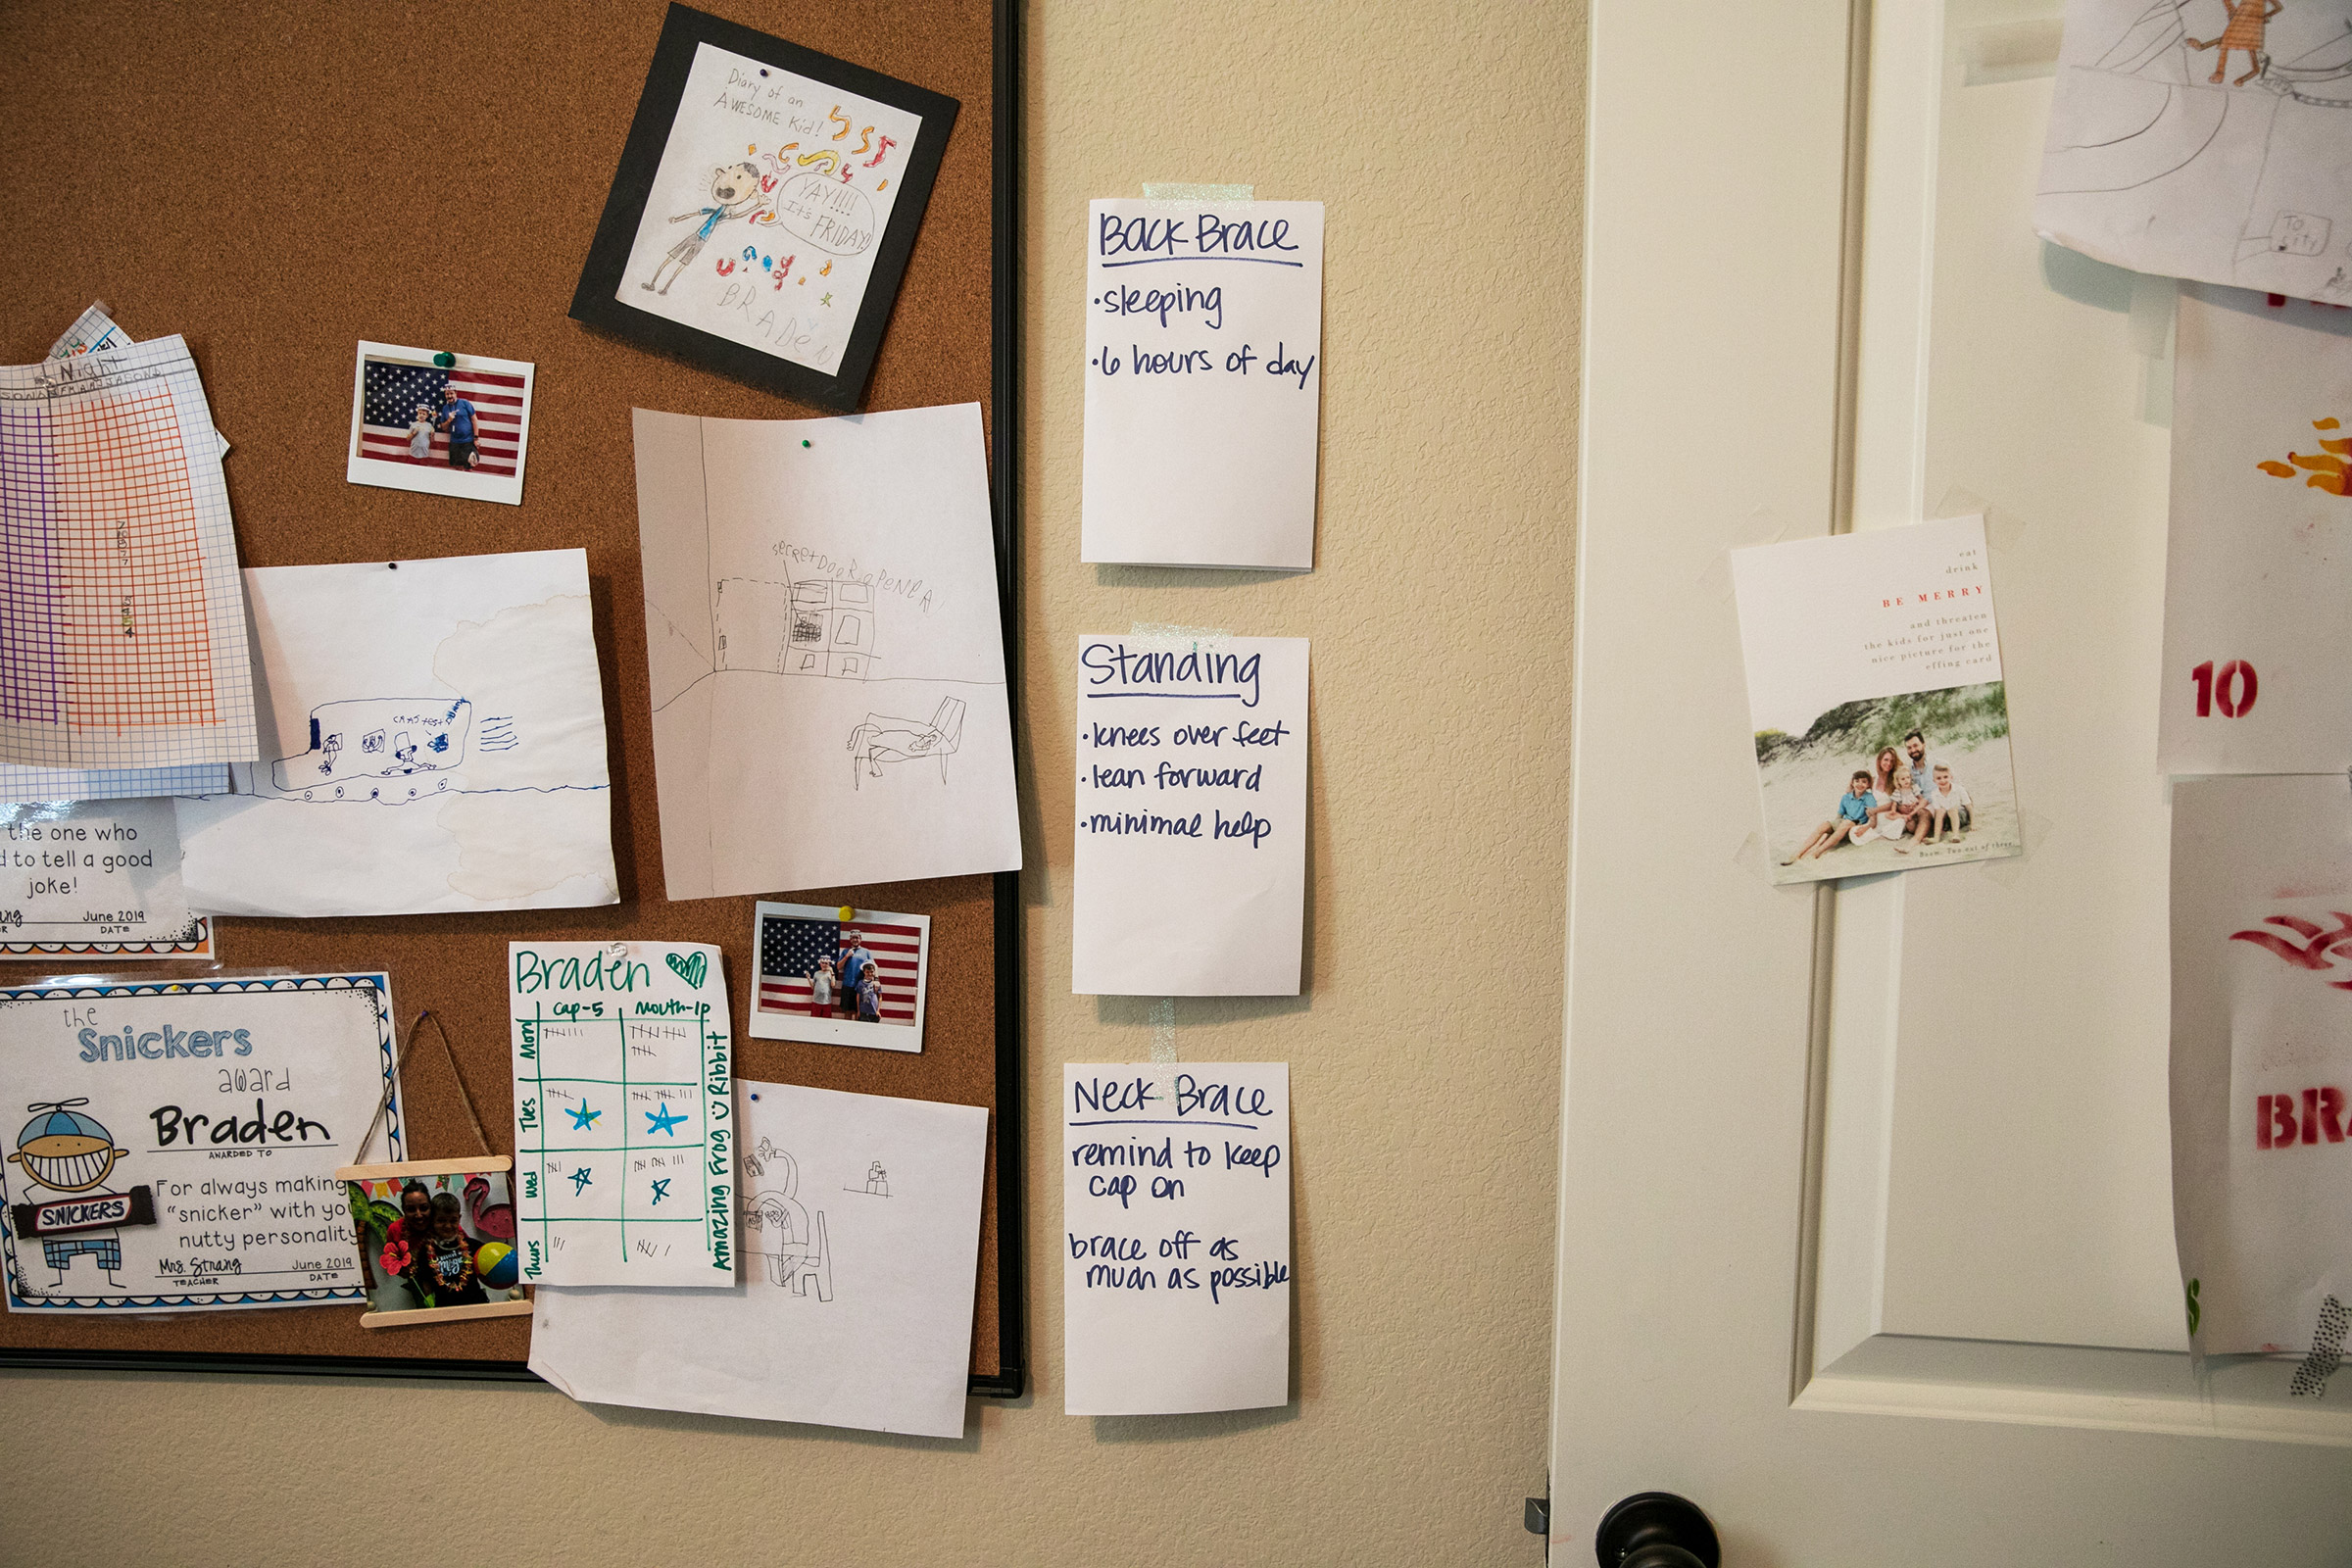 Some reminders of Braden's treatment hang on the wall in the Scott family home.